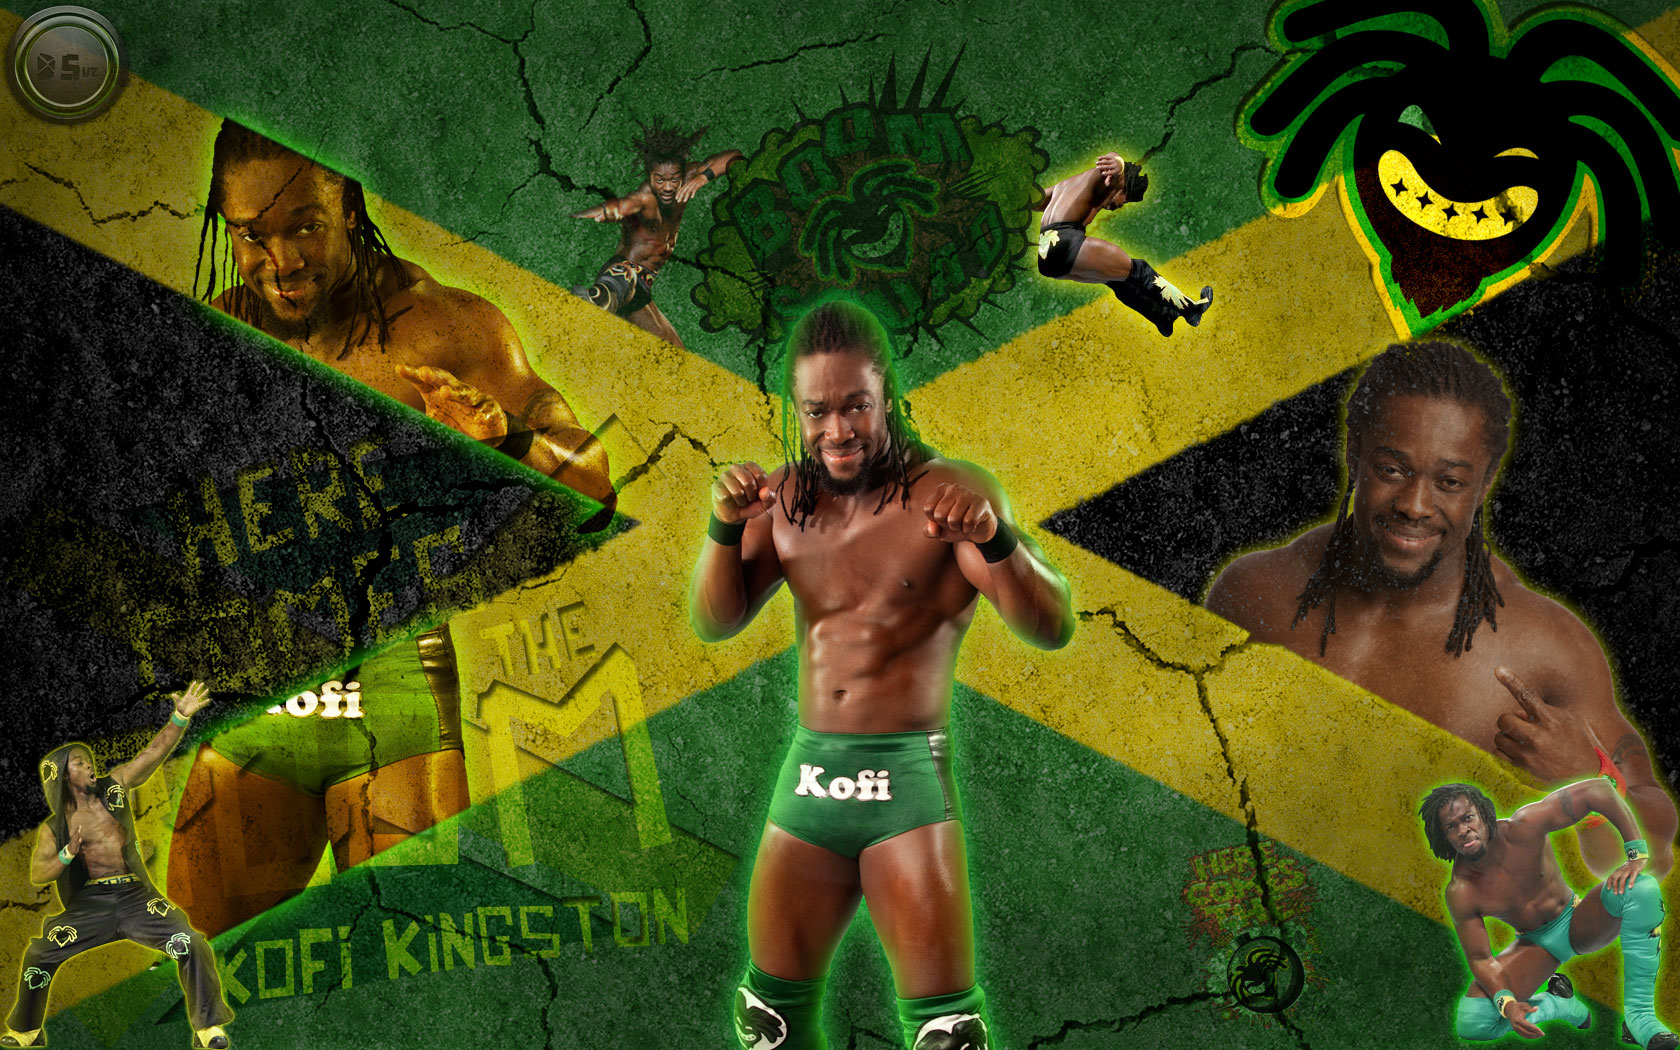 http://www.uplooder.net/img/image/39/59f5f0878699a830c5a855f0519fa98a/Kofi-Kingston-Jamaican-Superstar-.jpg